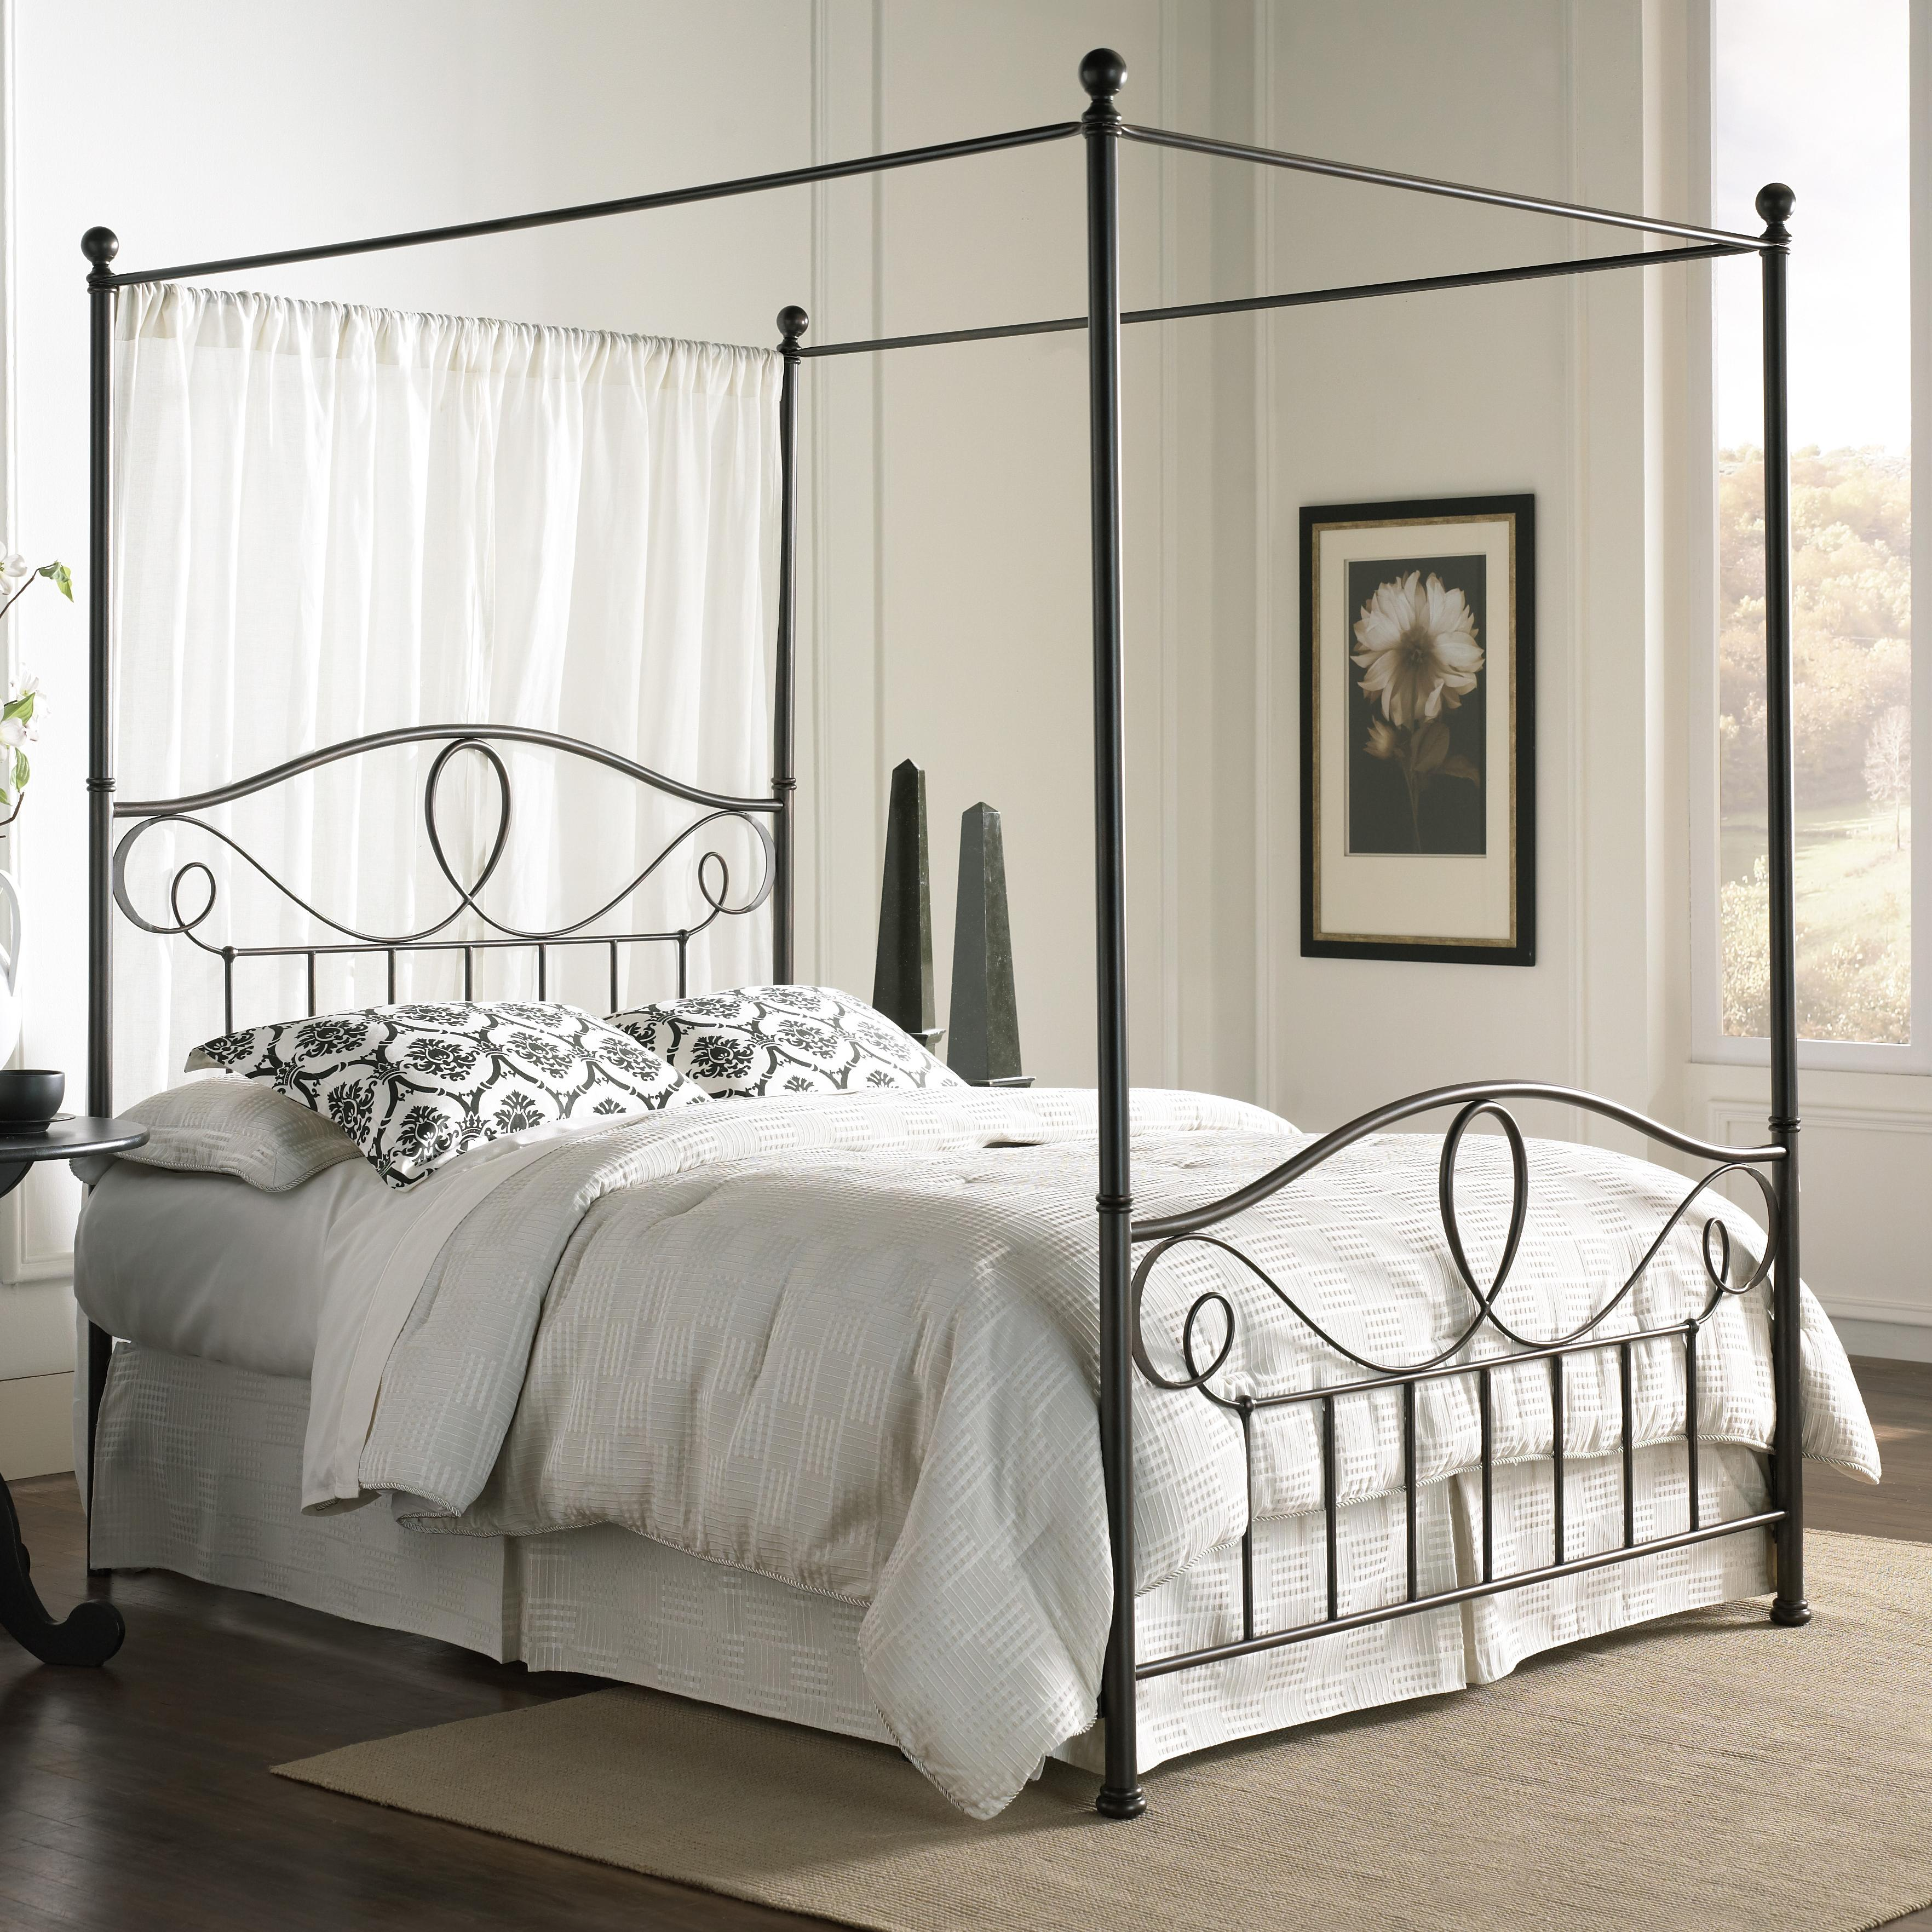 Fashion Bed Group Canopy Beds Queen Sylvania Canopy Bed - Item Number: B16775